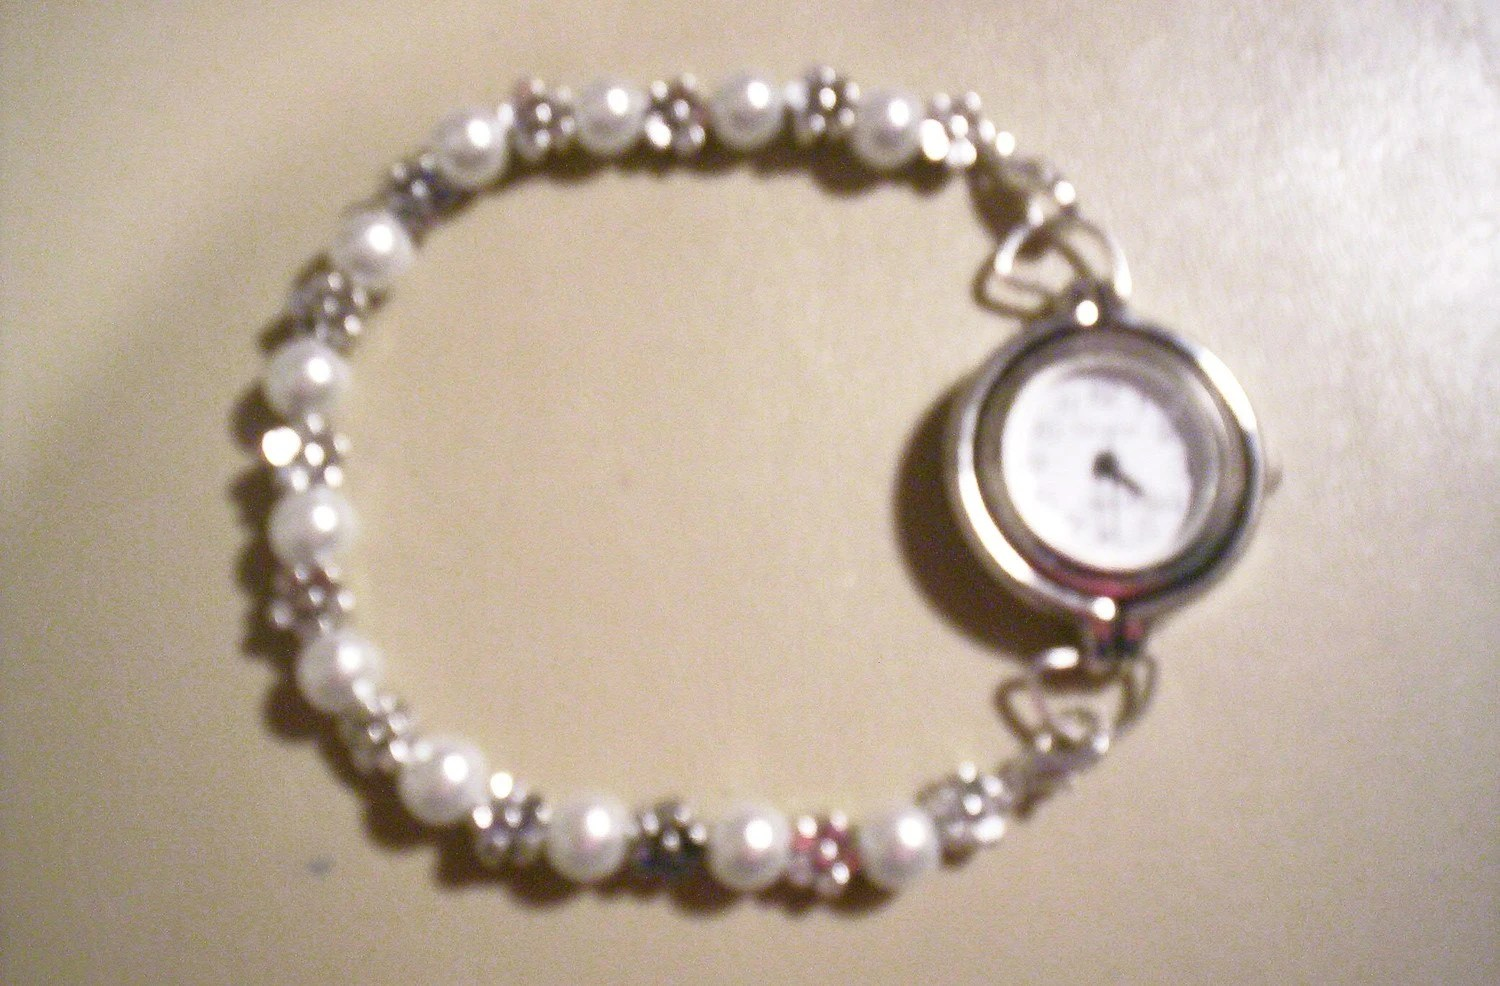 White 6mm Faux Pearl Beaded Swap Bracelet Watch Band or Medical Alert Tag Band